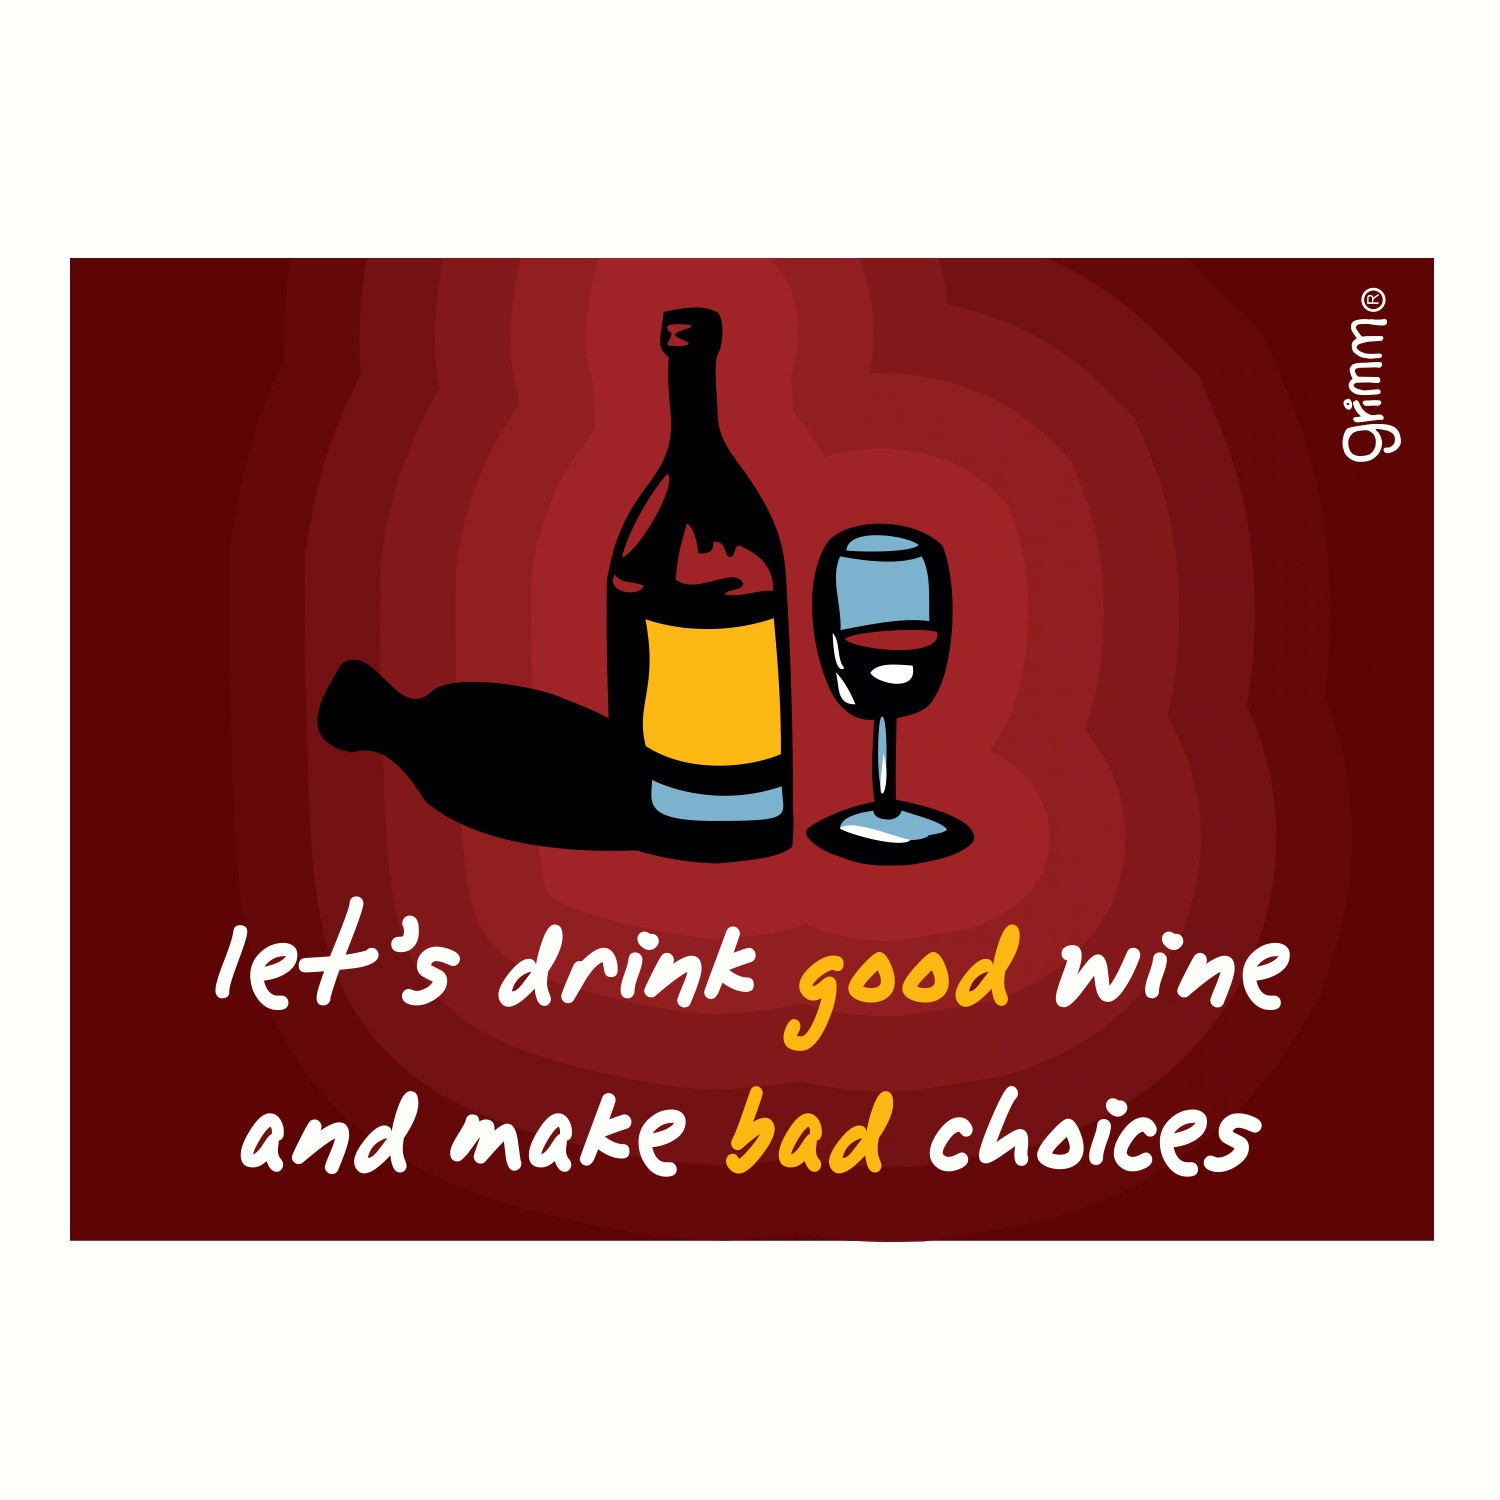 Magnet, Humorous Saying, Let's Drink Good Wine and Make Bad Choices